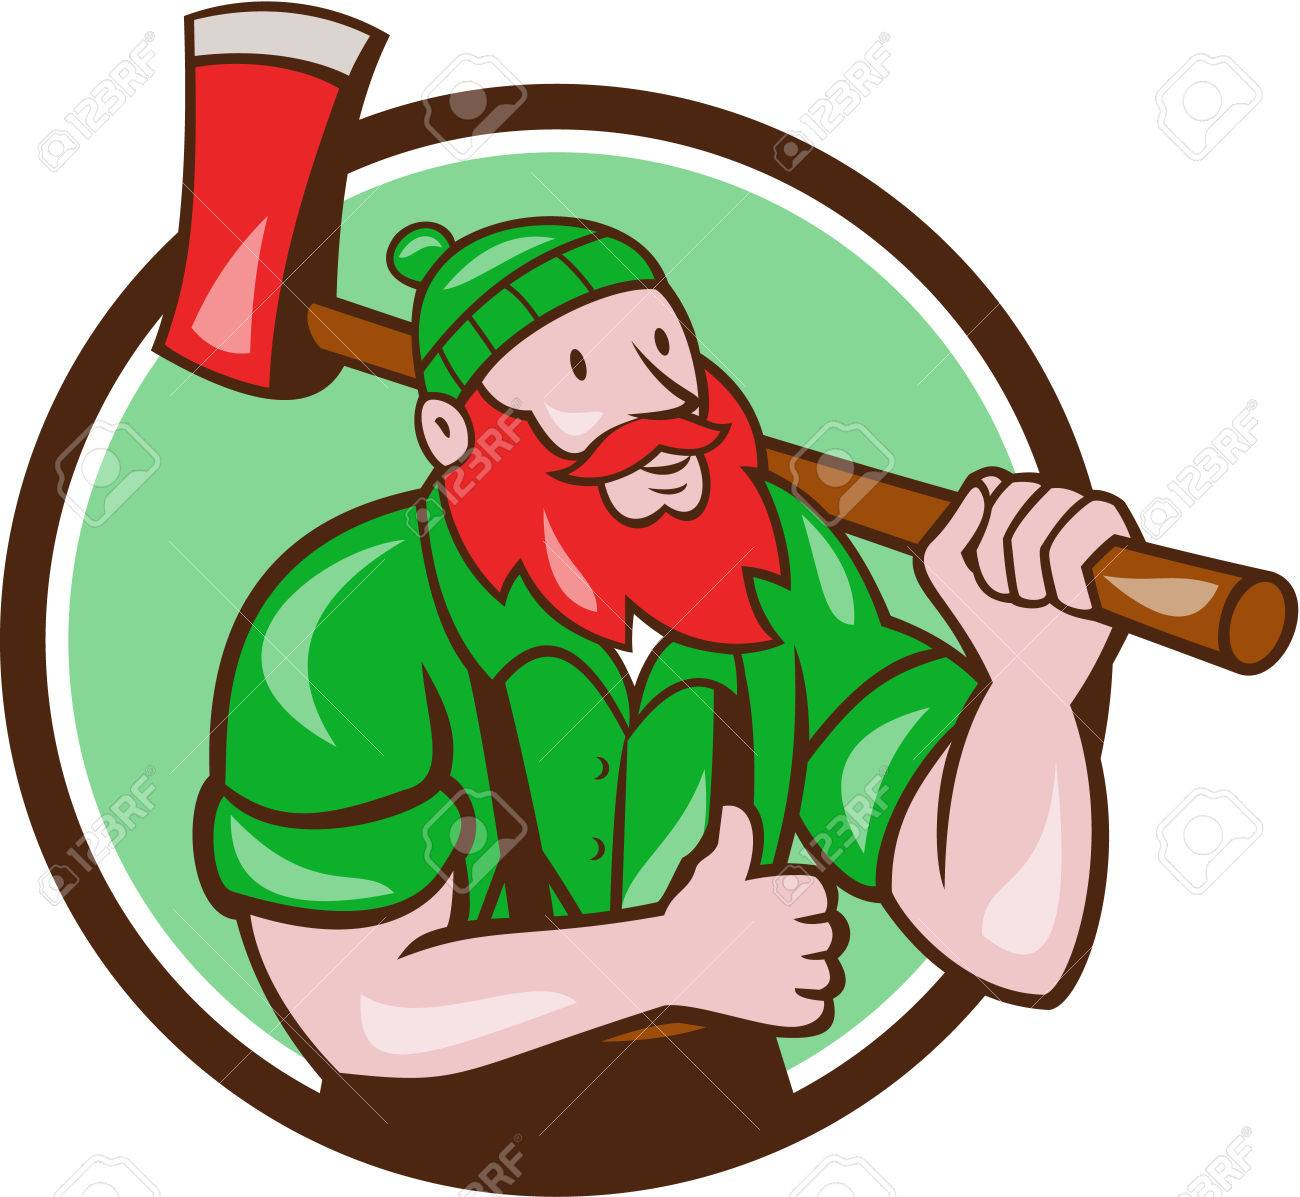 hight resolution of illustration of a paul bunyan an american lumberjack sawyer forest carrying axe on shoulder thumbs up